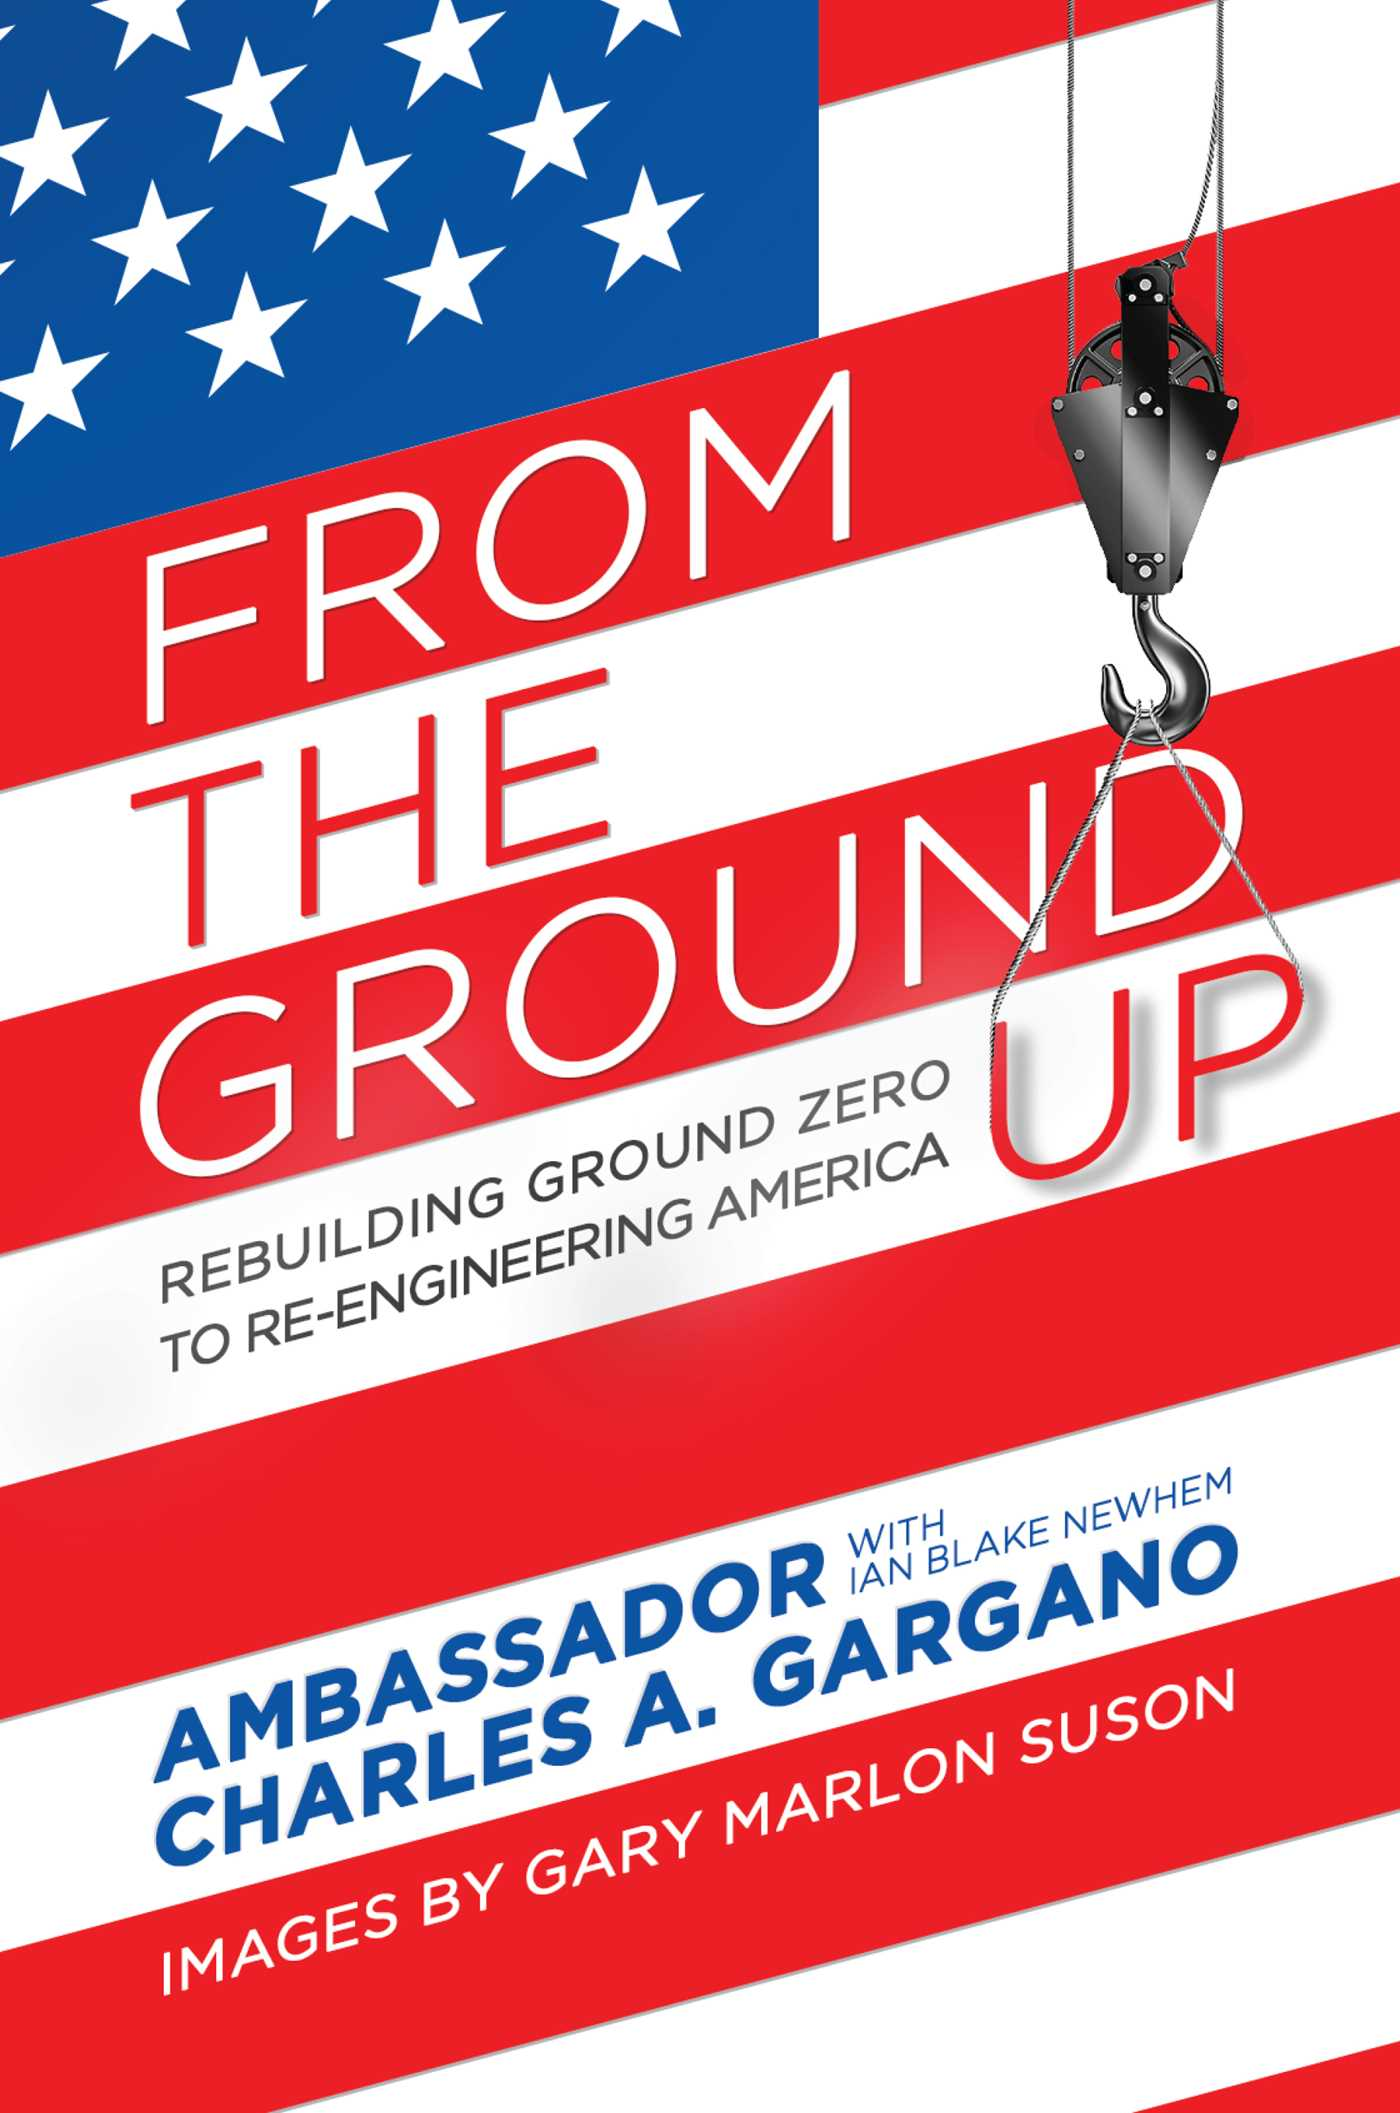 From The Ground Up from the ground up | book by charles a. gargano, ian blake